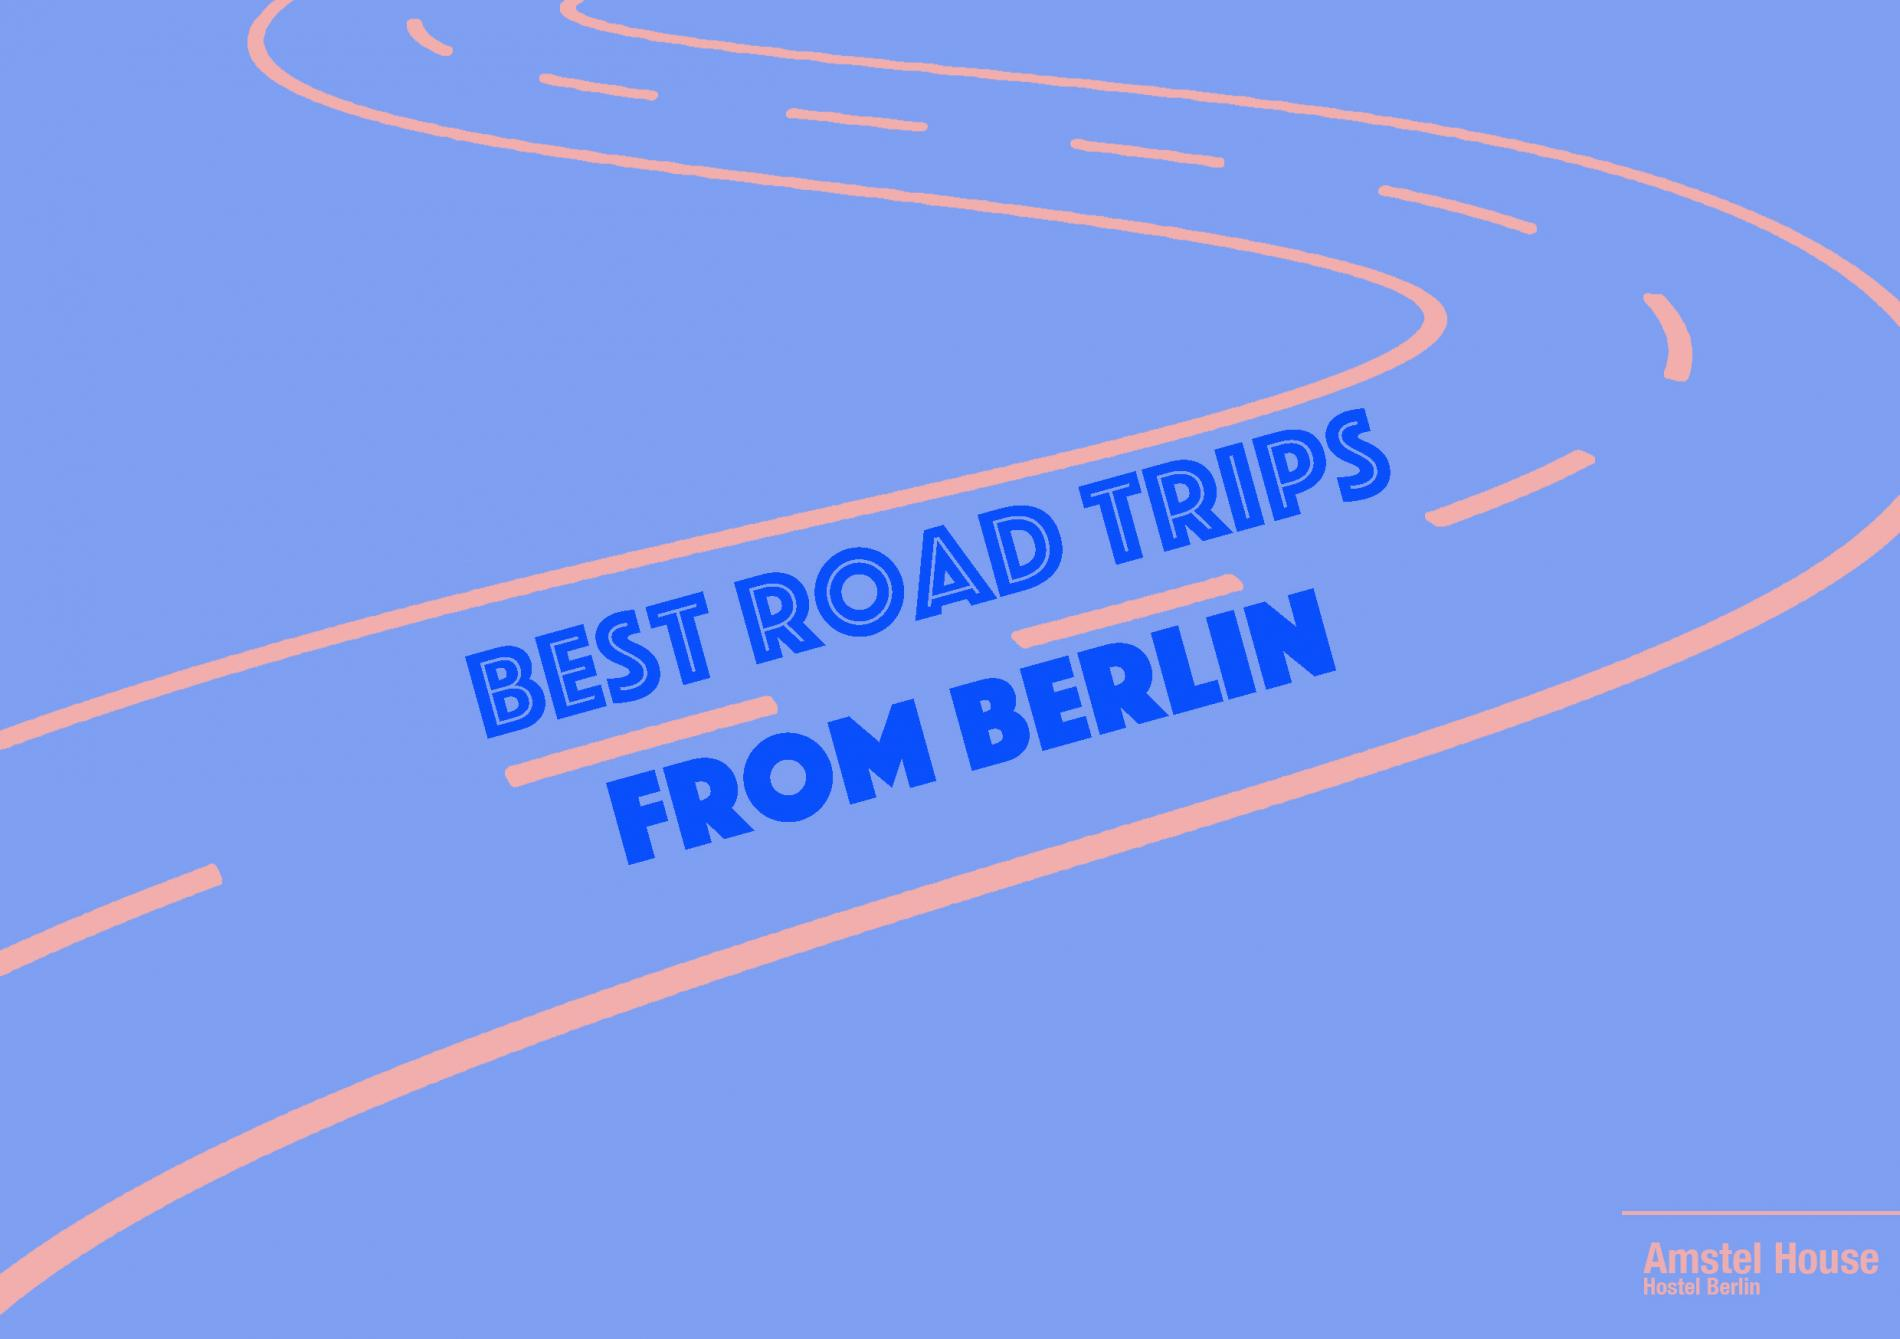 5 best road trips from berlin